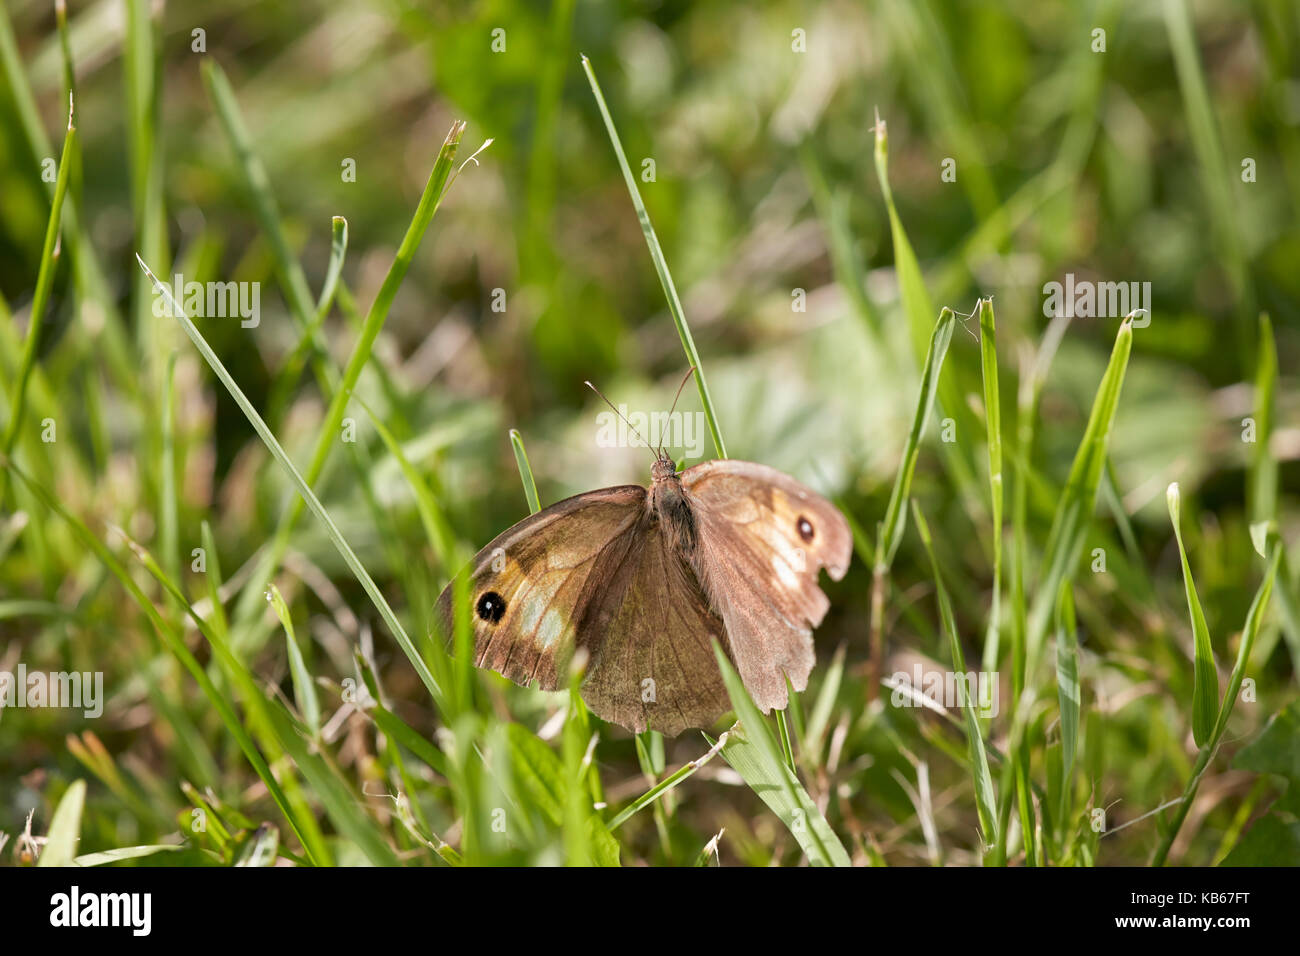 Meadow brown butterfly sitting in the grass. Scientific name: Maniola jurtina. - Stock Image